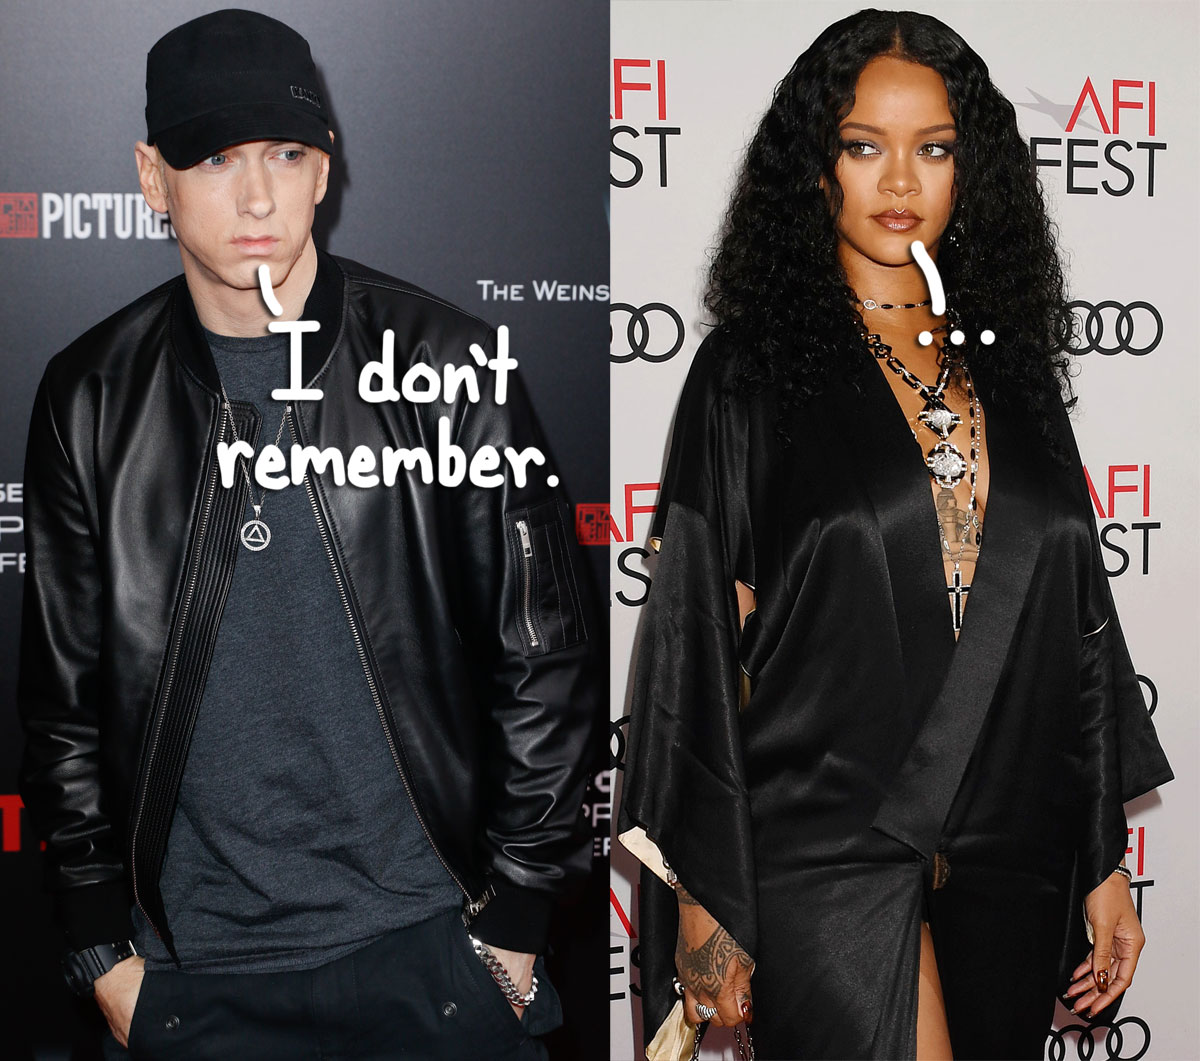 Eminem Reveals He Has 'Zero Recollection' Of Recording Infamous Leaked Rihanna Diss Track — WTF?!